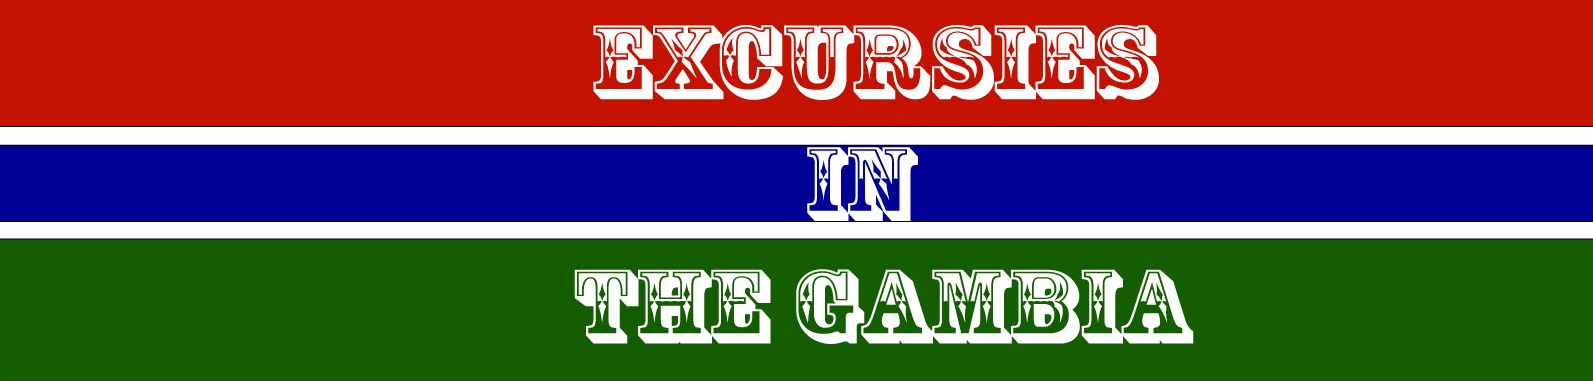 Excursies Gambia